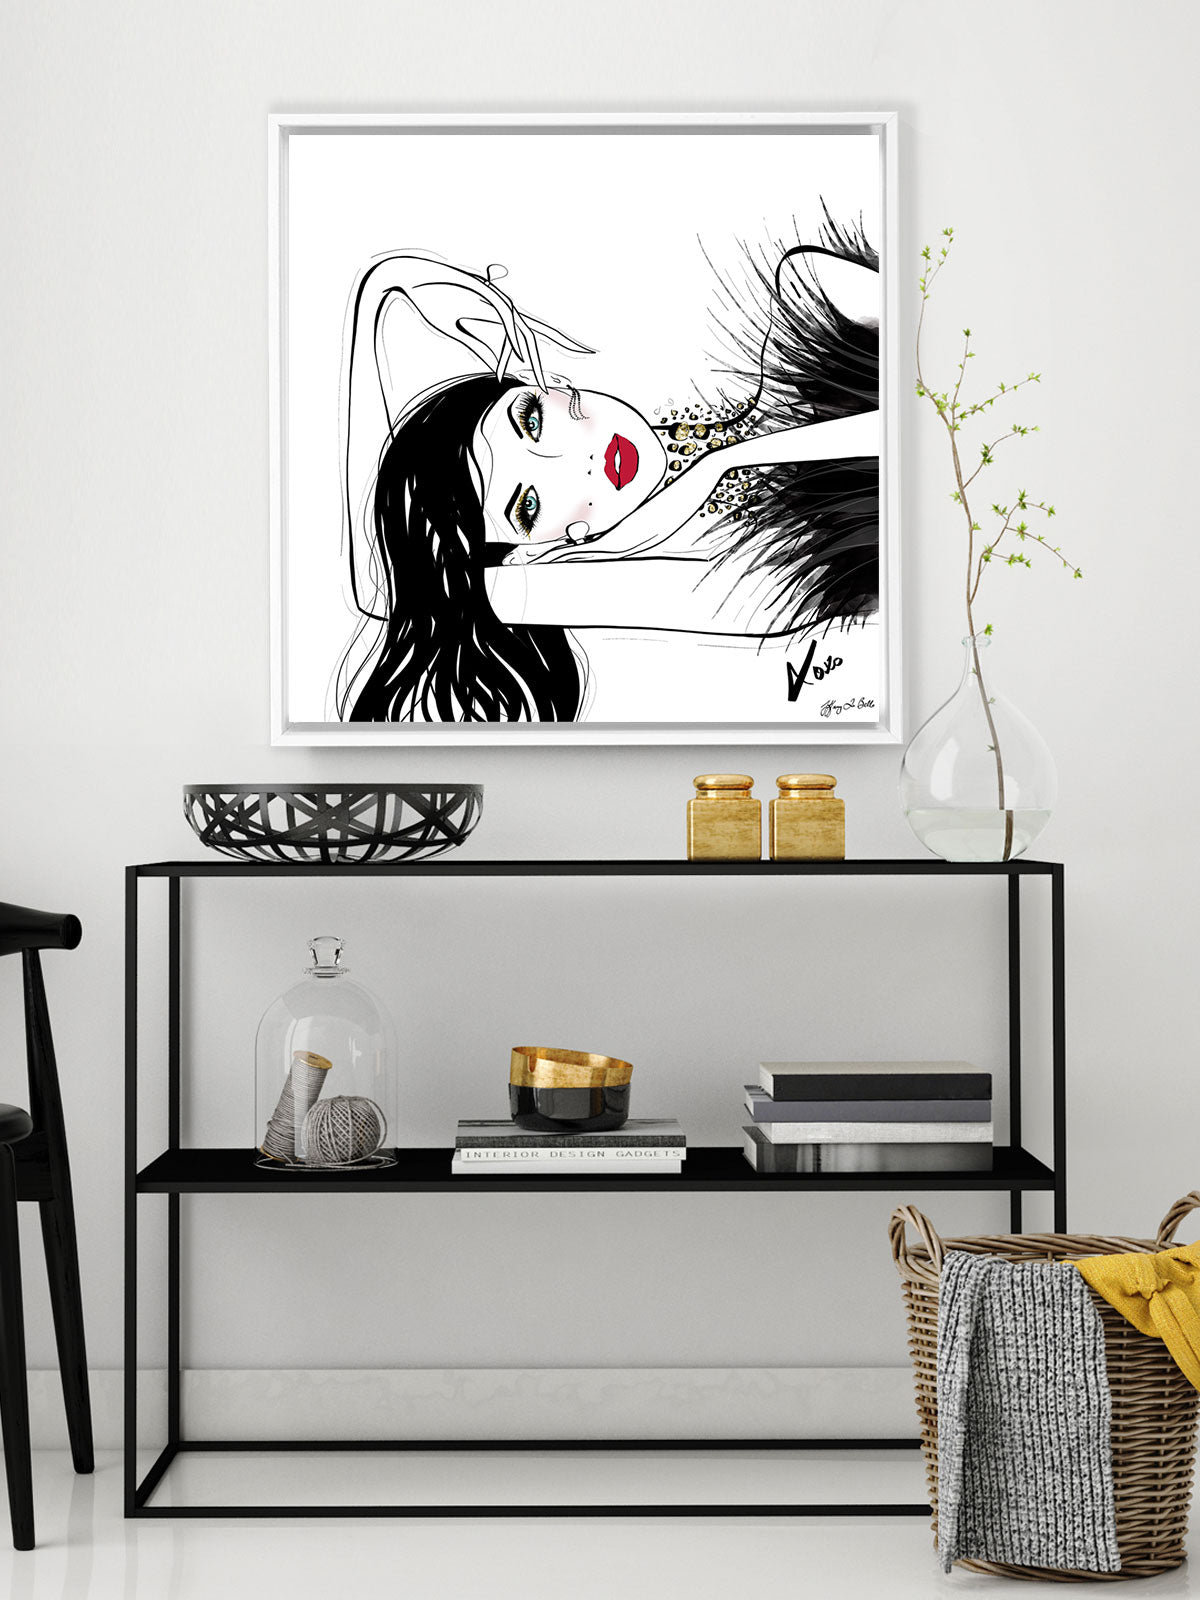 A Peaceful Moment - Illustration - Canvas Gallery Print - Unframed or Framed - Tiffany La Belle